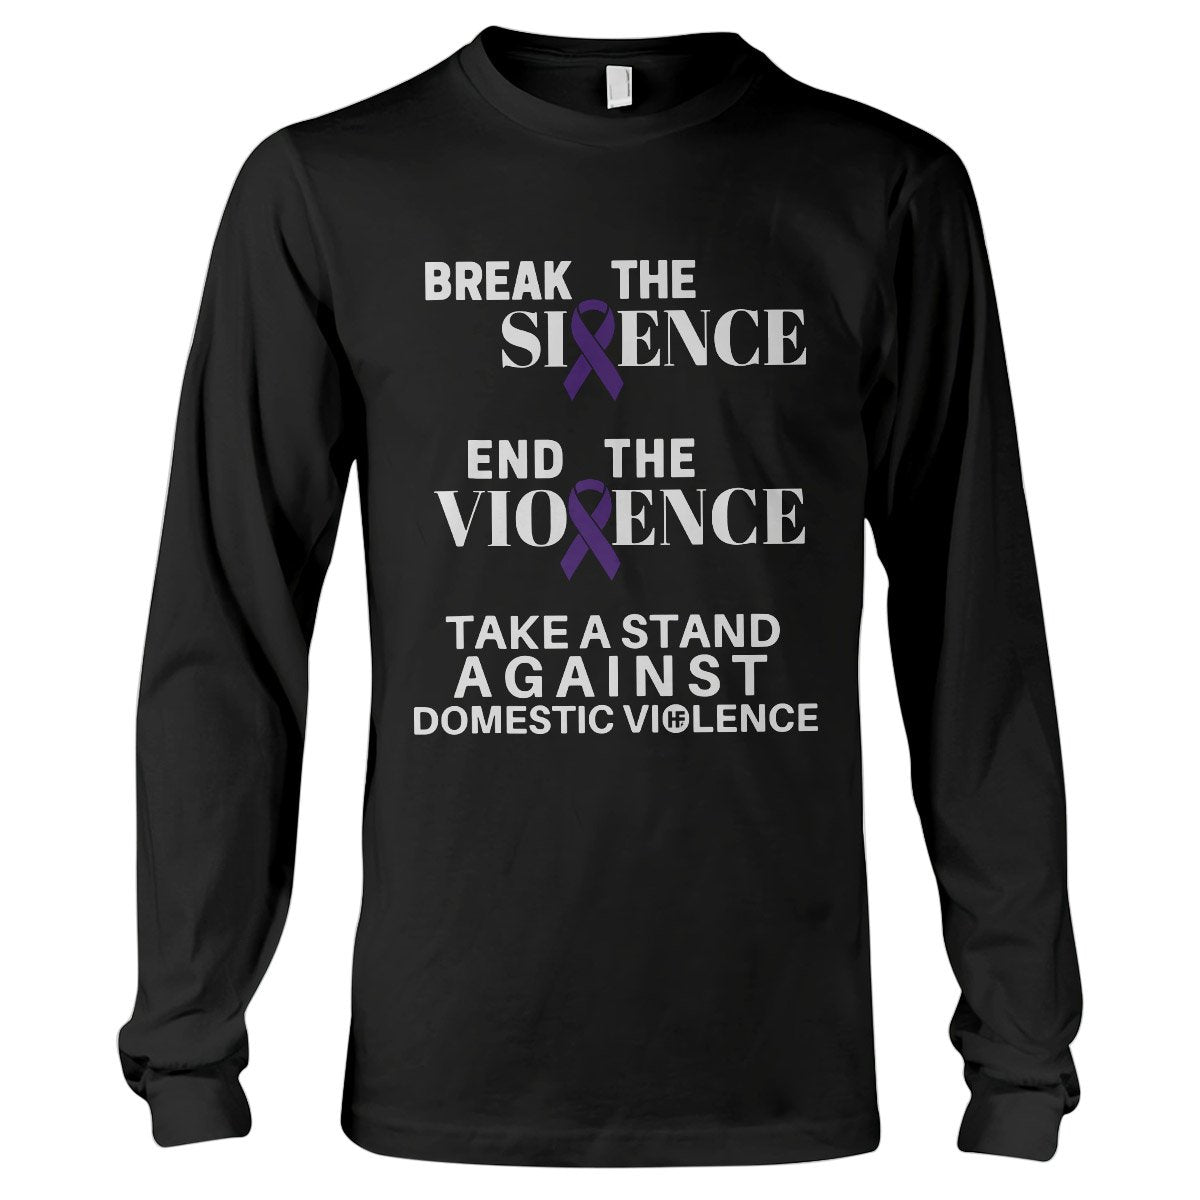 Domestic Violence Awareness Break The Silence Long Sleeve T-Shirt